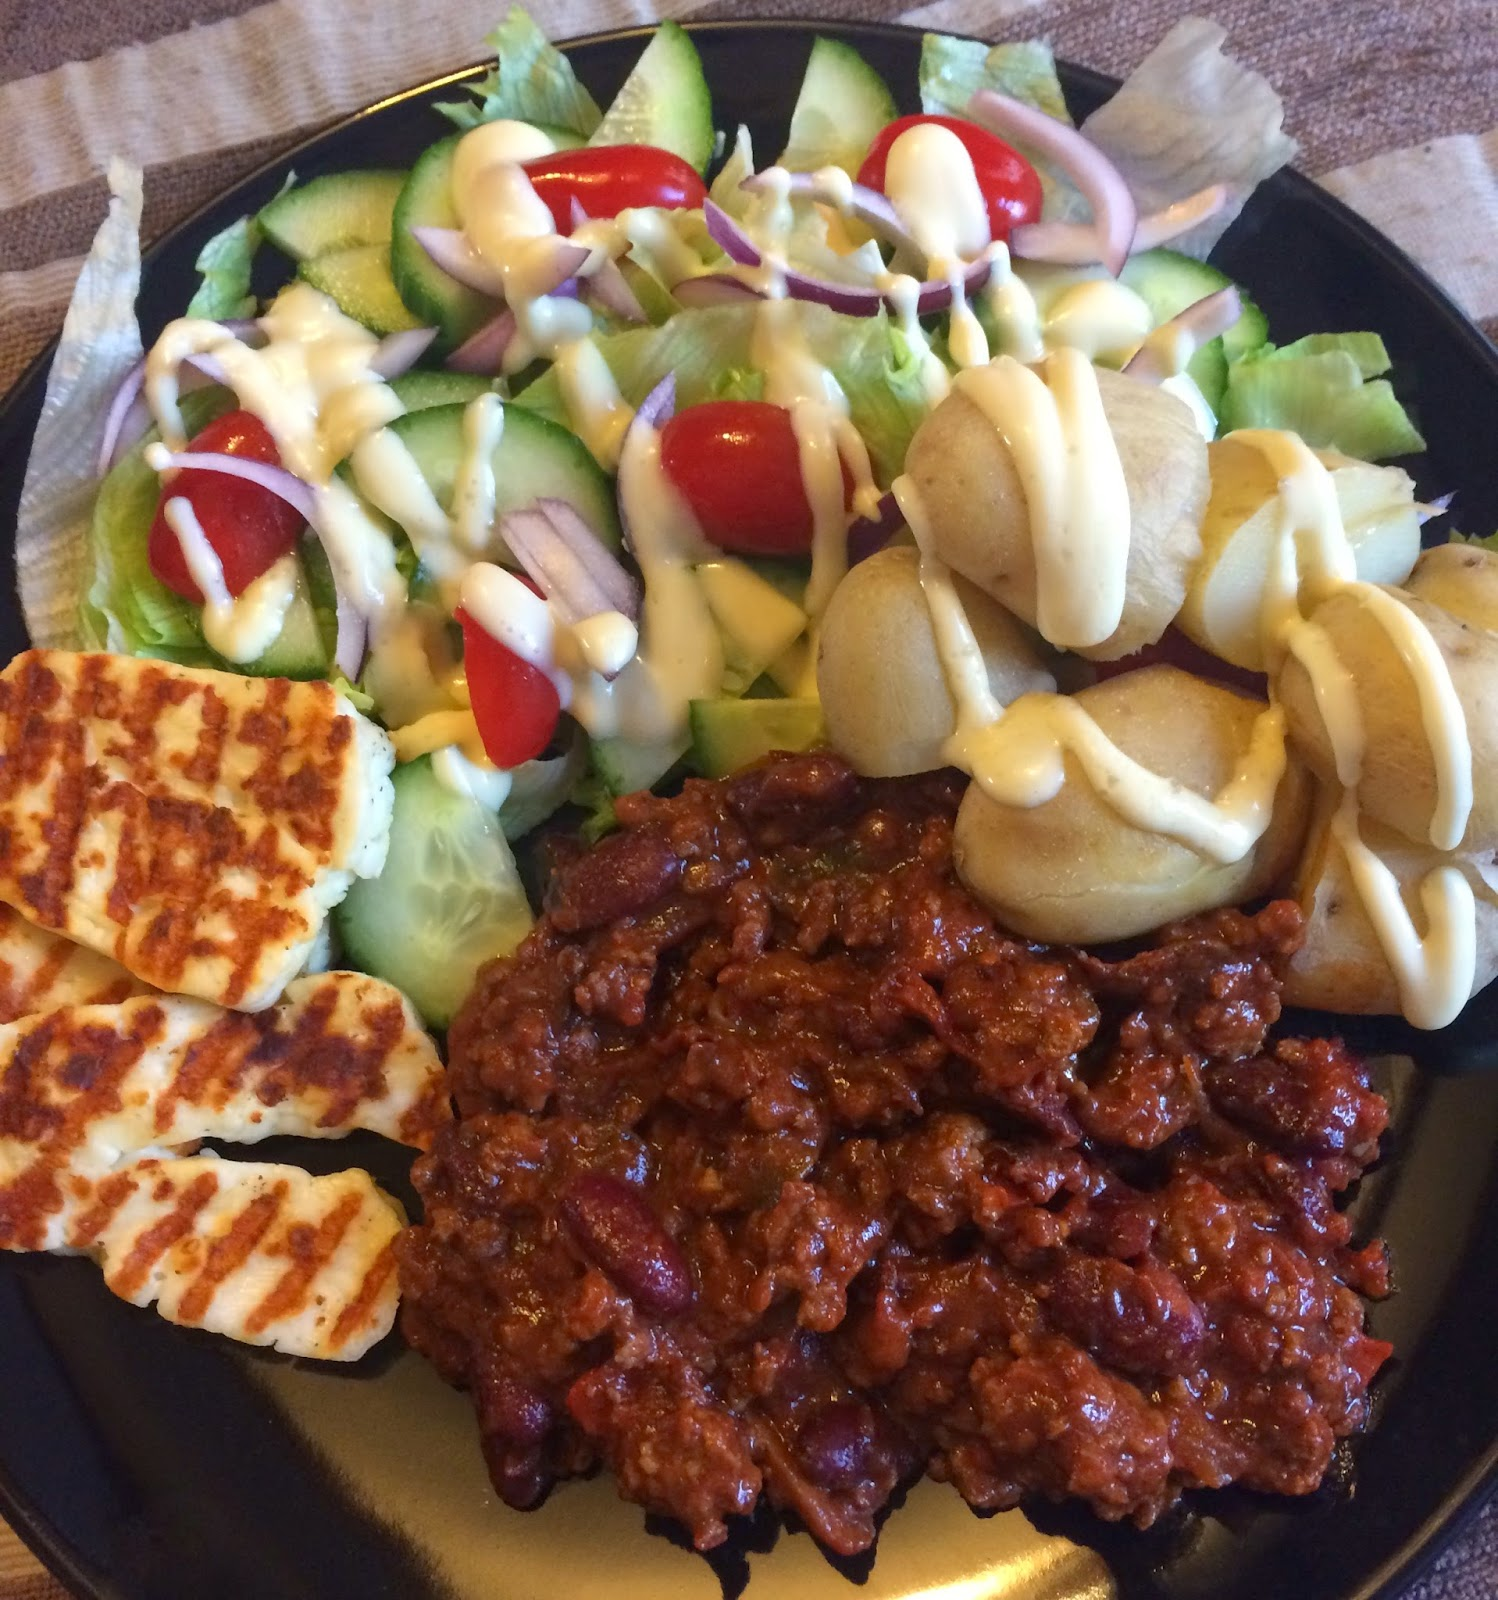 Girl up north slimming world chilli recipe Slimming world meal ideas